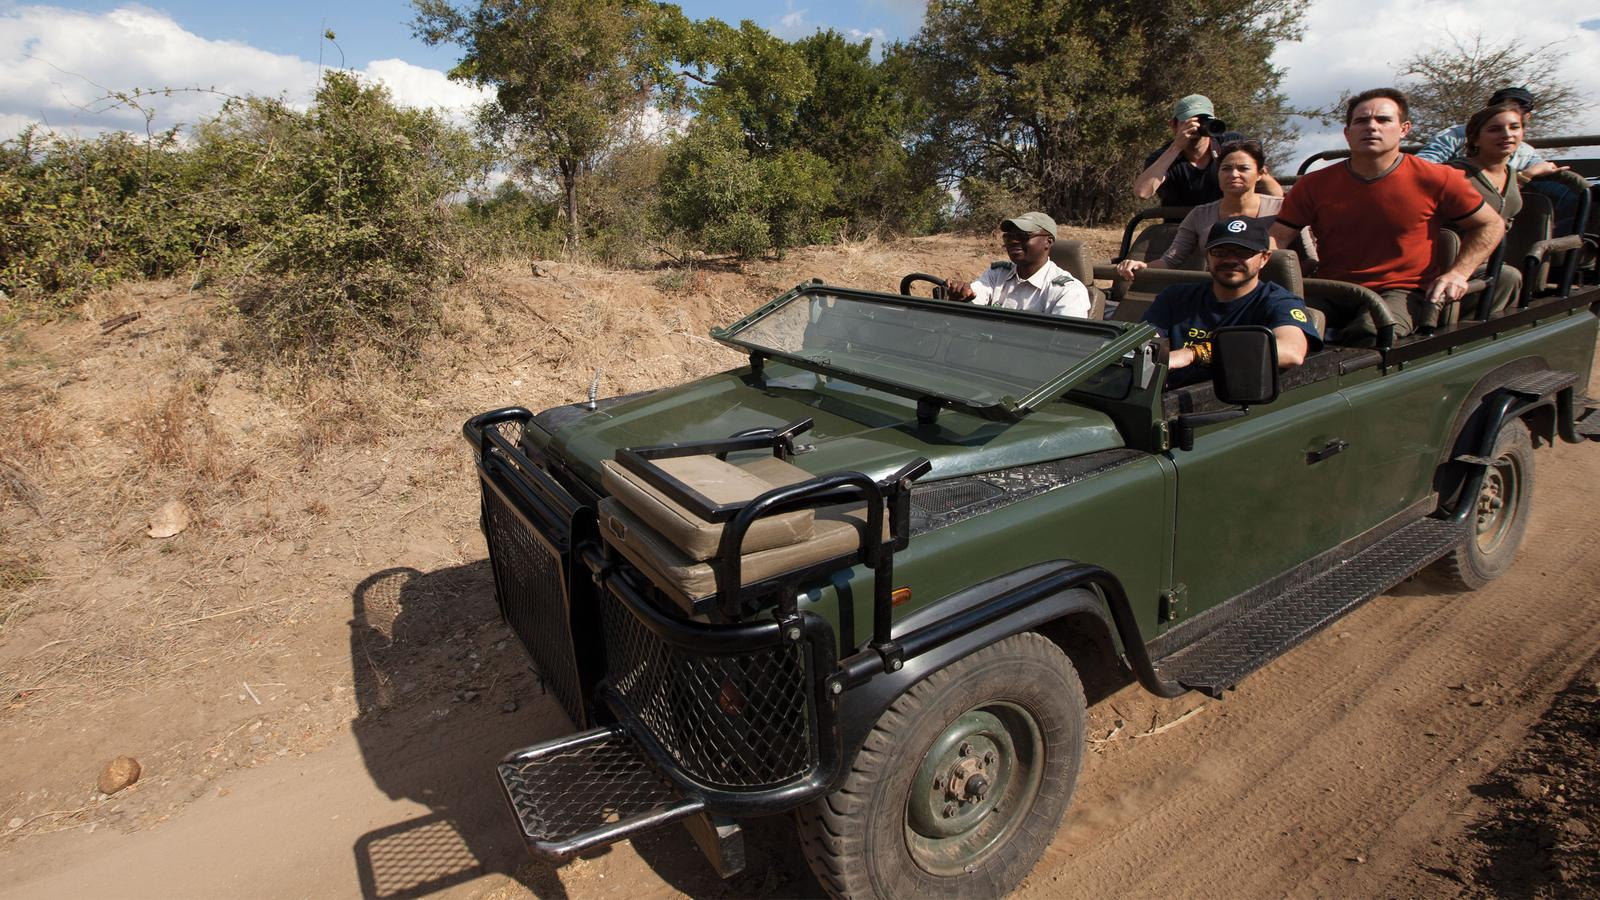 Travellers driving through the Timbavati Game Drive in South Africa